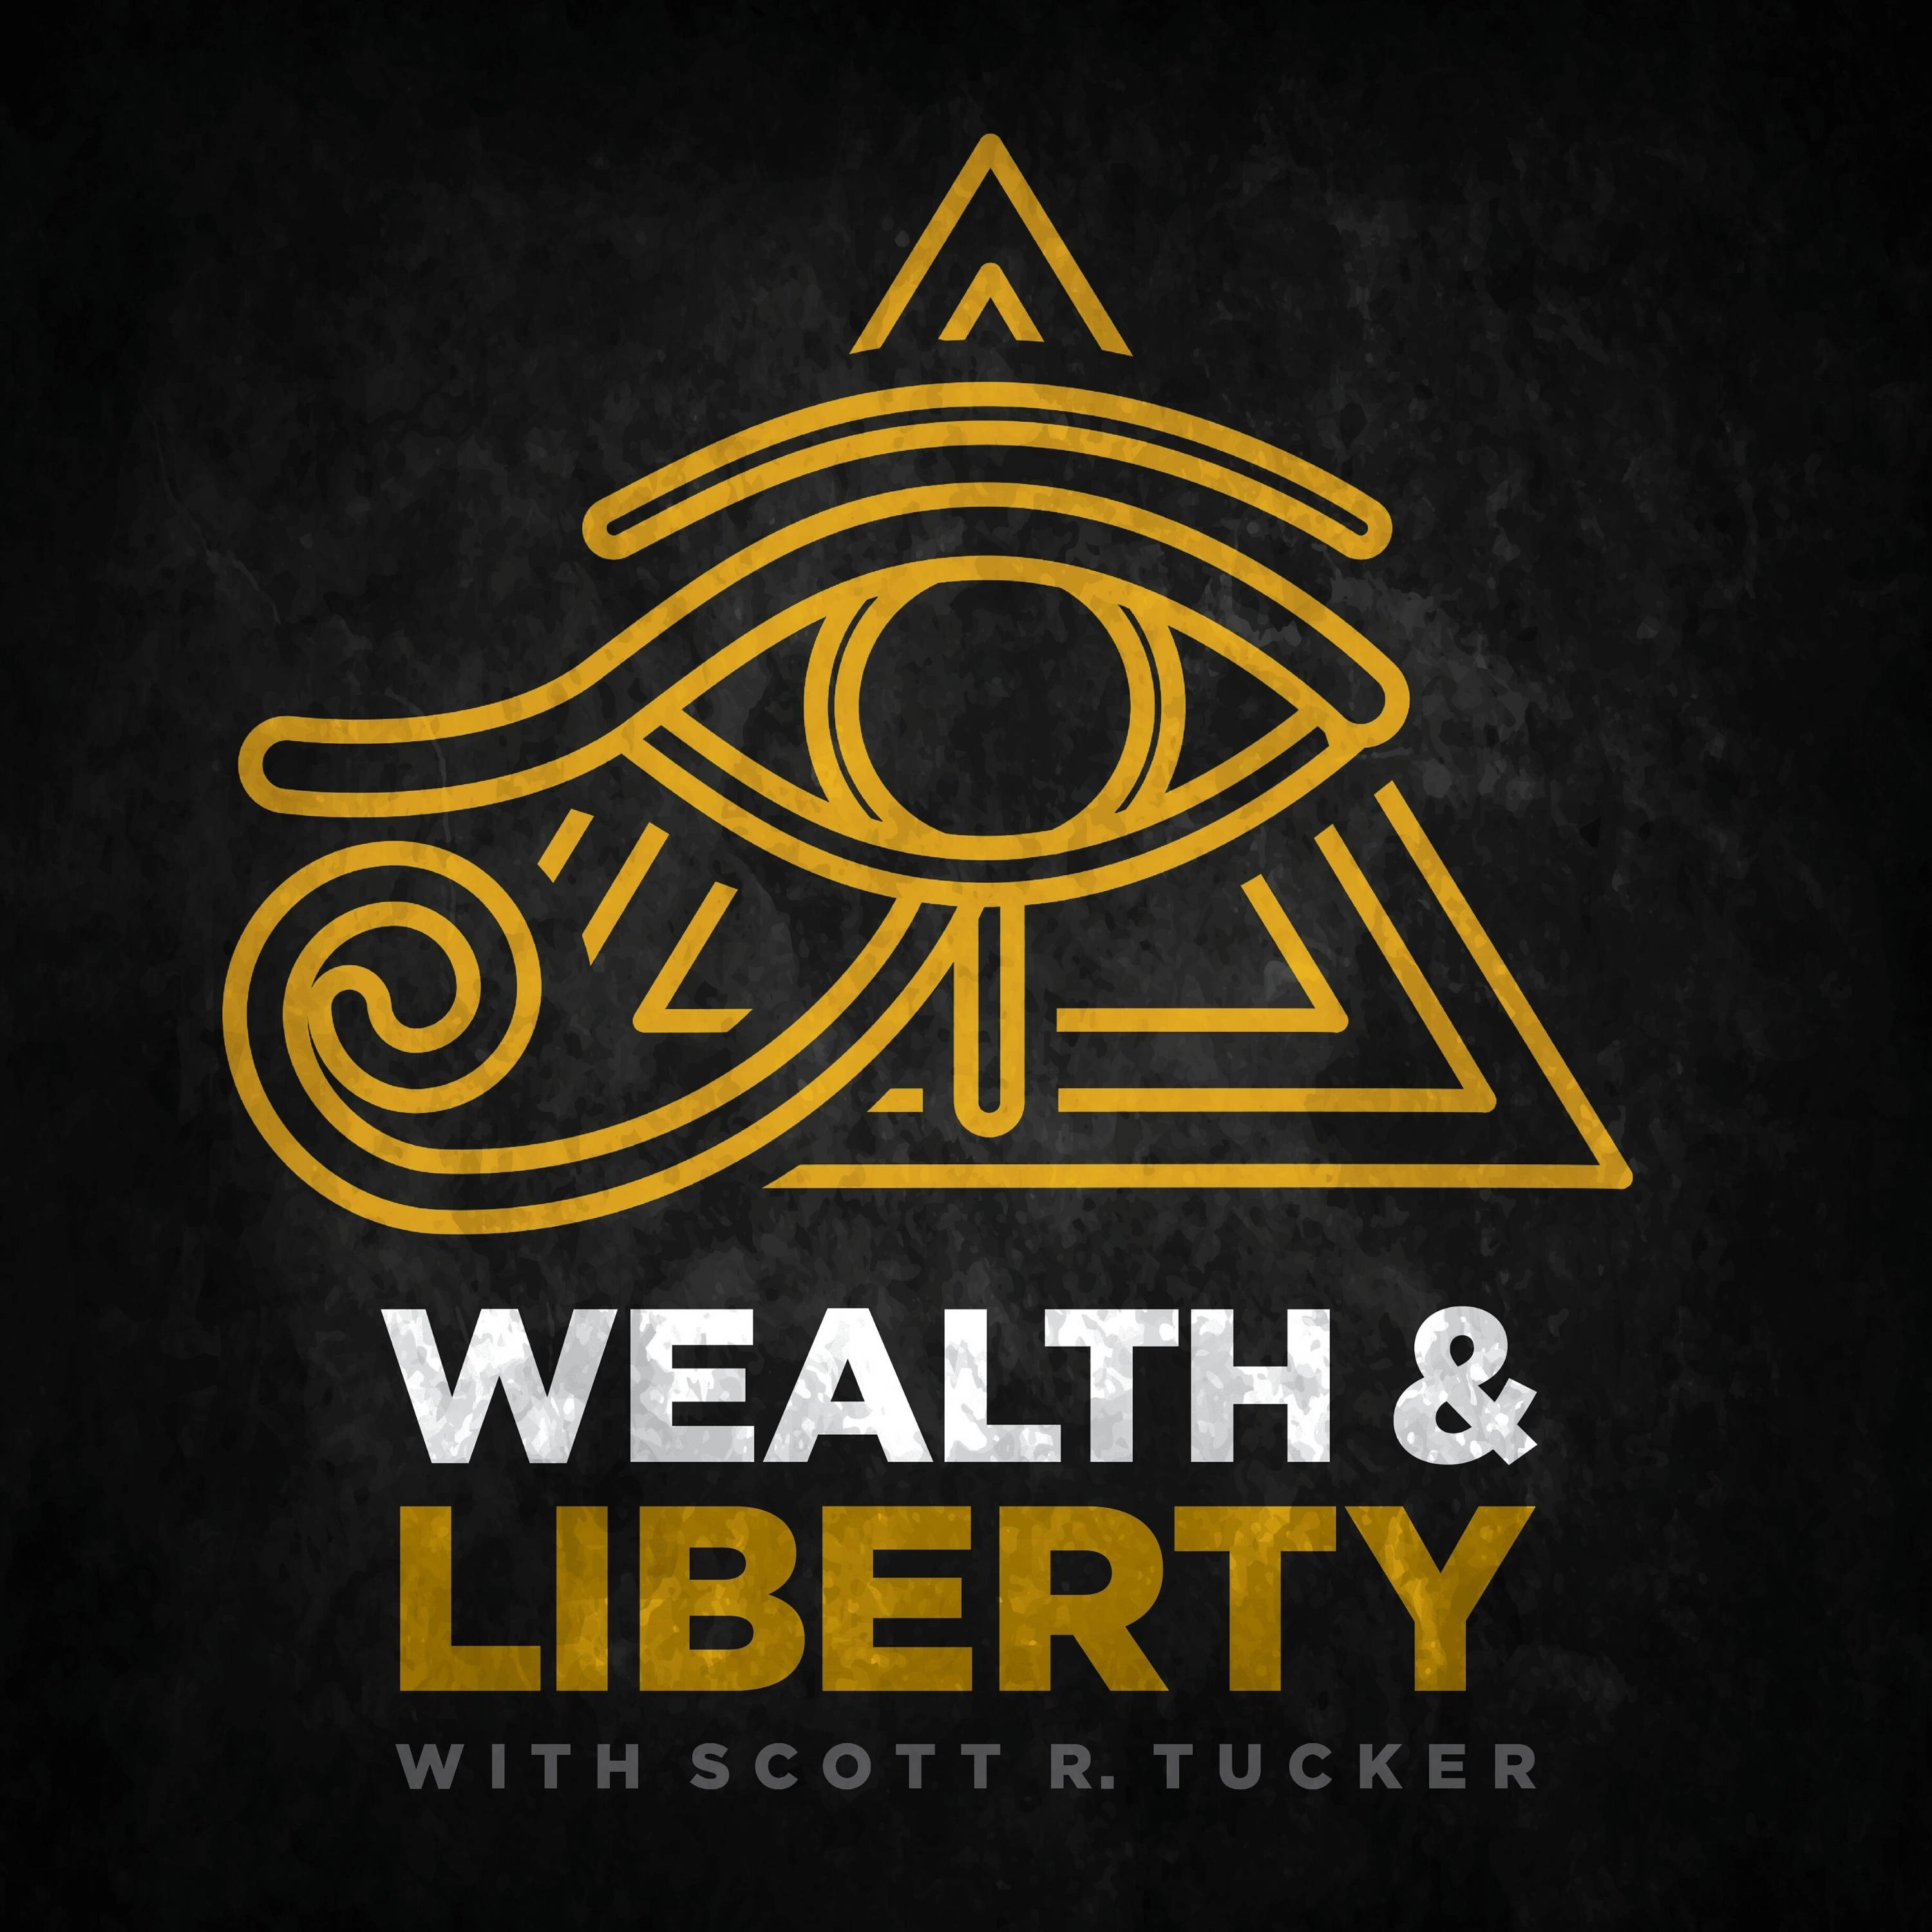 Wealth & Liberty